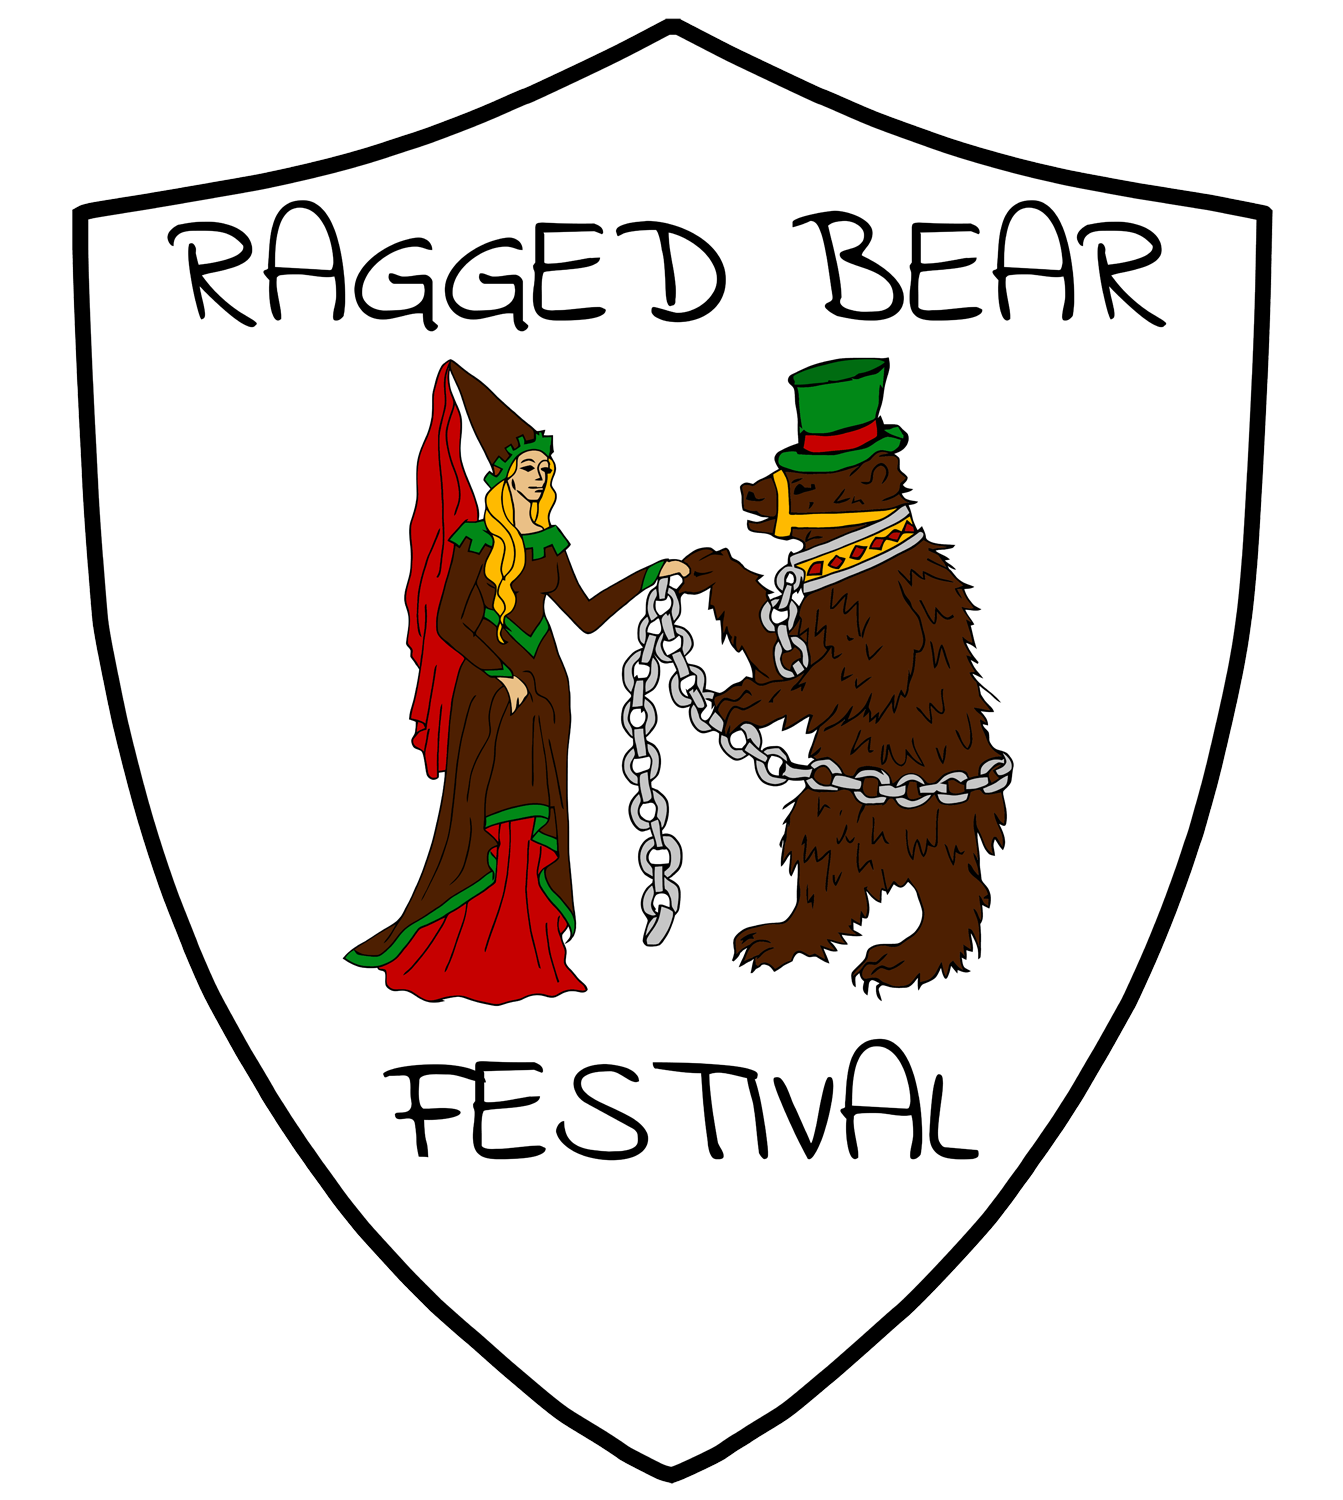 What is Ragged Bear Festival?